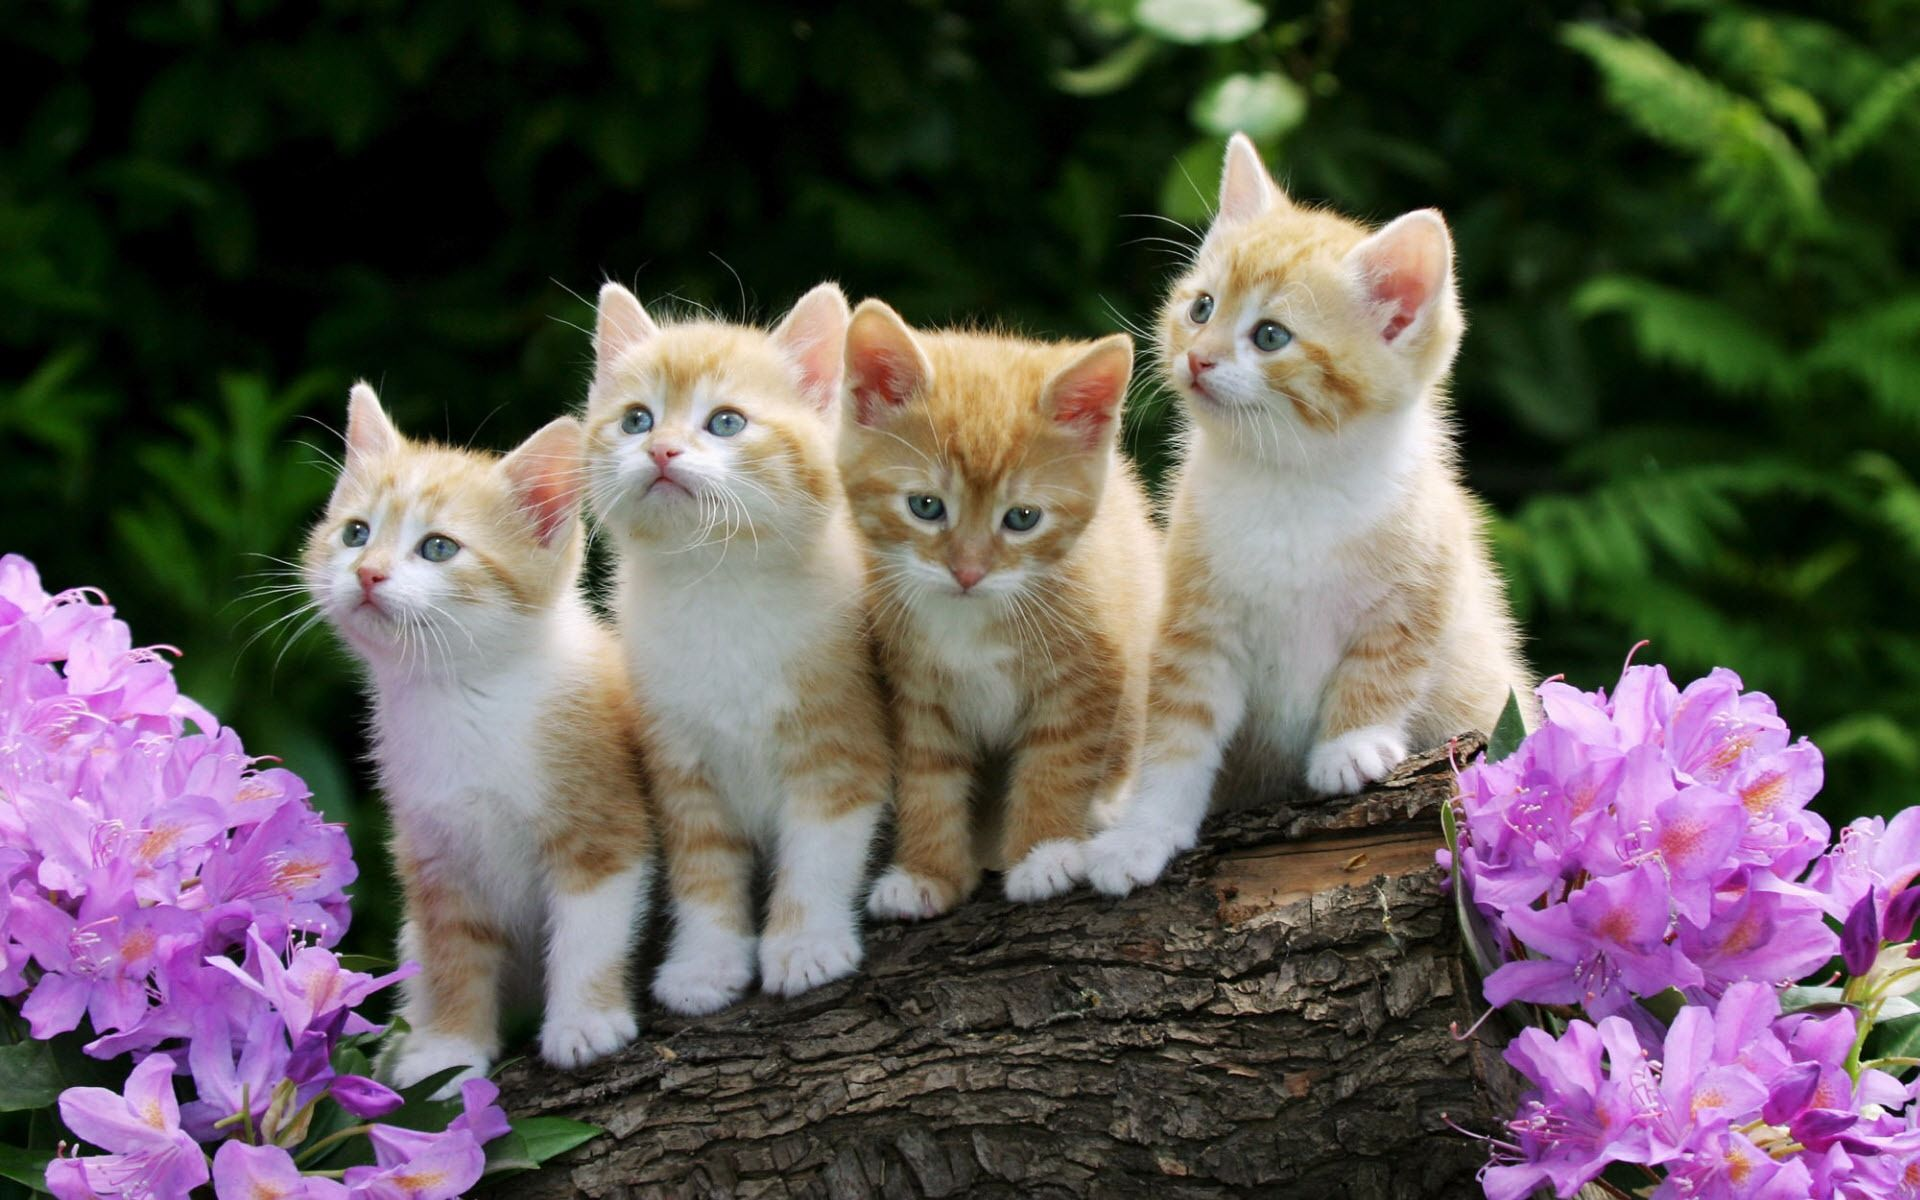 cute baby cats and dogsbaby cats and dogsingatinfo free desktop